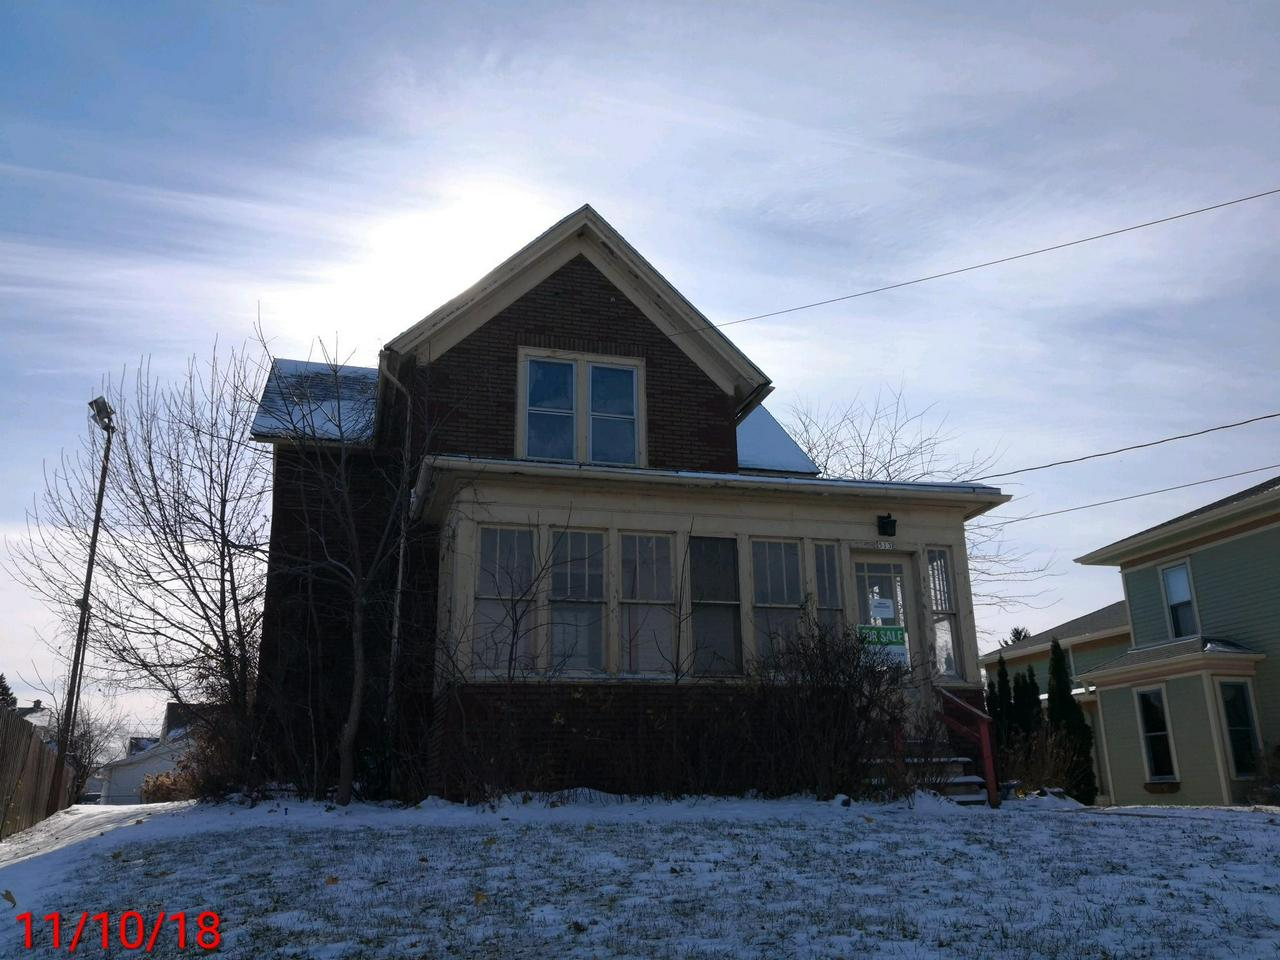 MUST SEE!!Great potential for this turn of the century Old Style 2 Story home. Over-sized L-shaped front porch is sunny and cozy. Original woodwork and maple floors really add to the charm.Sold AS-IS. Seller will NOT make any repairs. Data provided by third party has not been verified. No condition report will be provided. Property will not qualify for FHA. Cash offer or rehab loan needed.